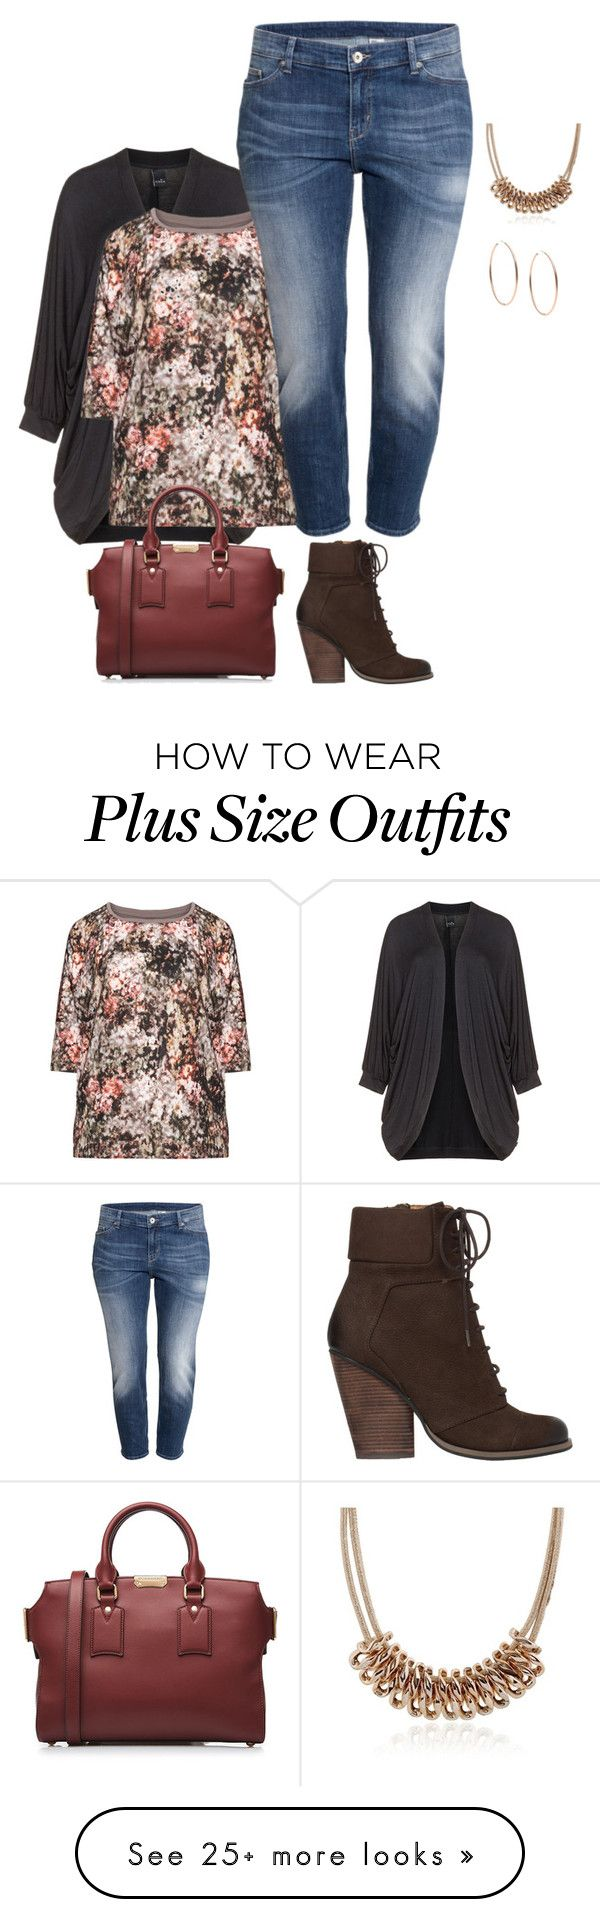 """""""plus size weekends"""" by kristie-payne on Polyvore featuring Max Studio, Michael Kors, Samoon, Burberry and H&M"""